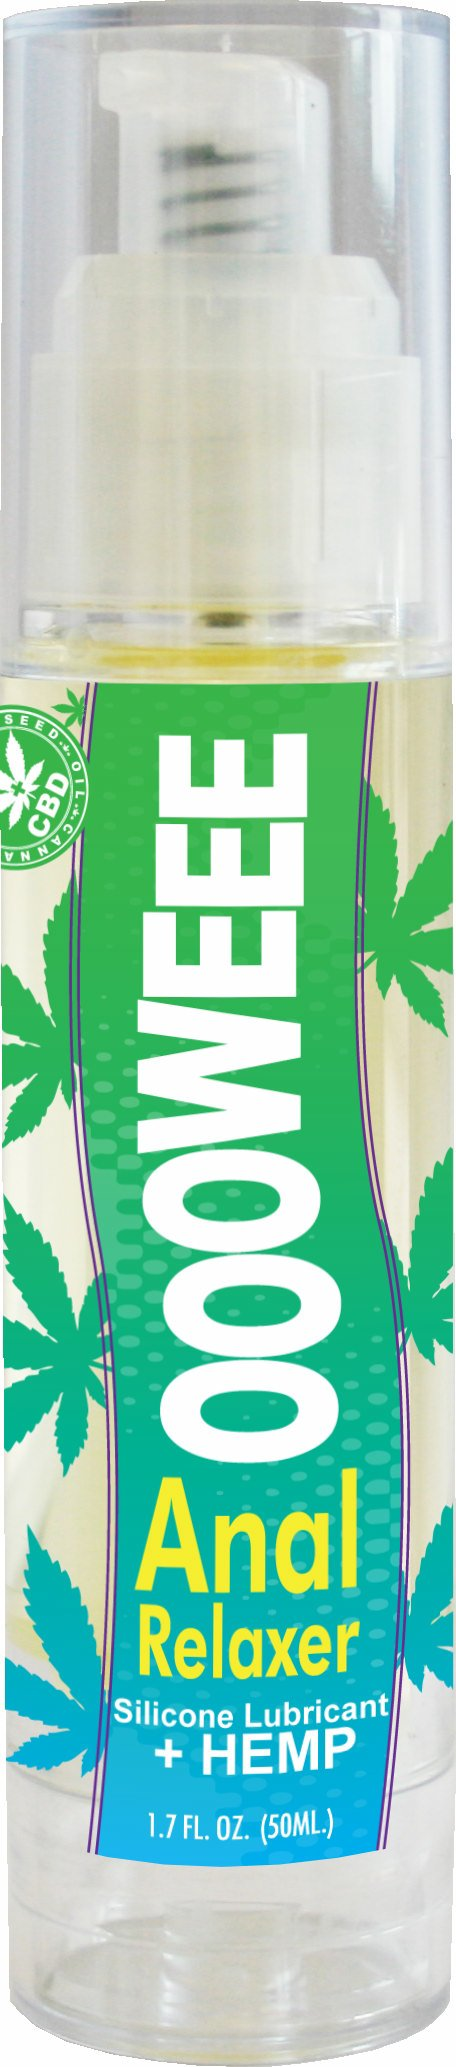 Body Action Products Ooowee Anal Relaxer Lubricant with Hemp Seed Oil 1.7 Oz